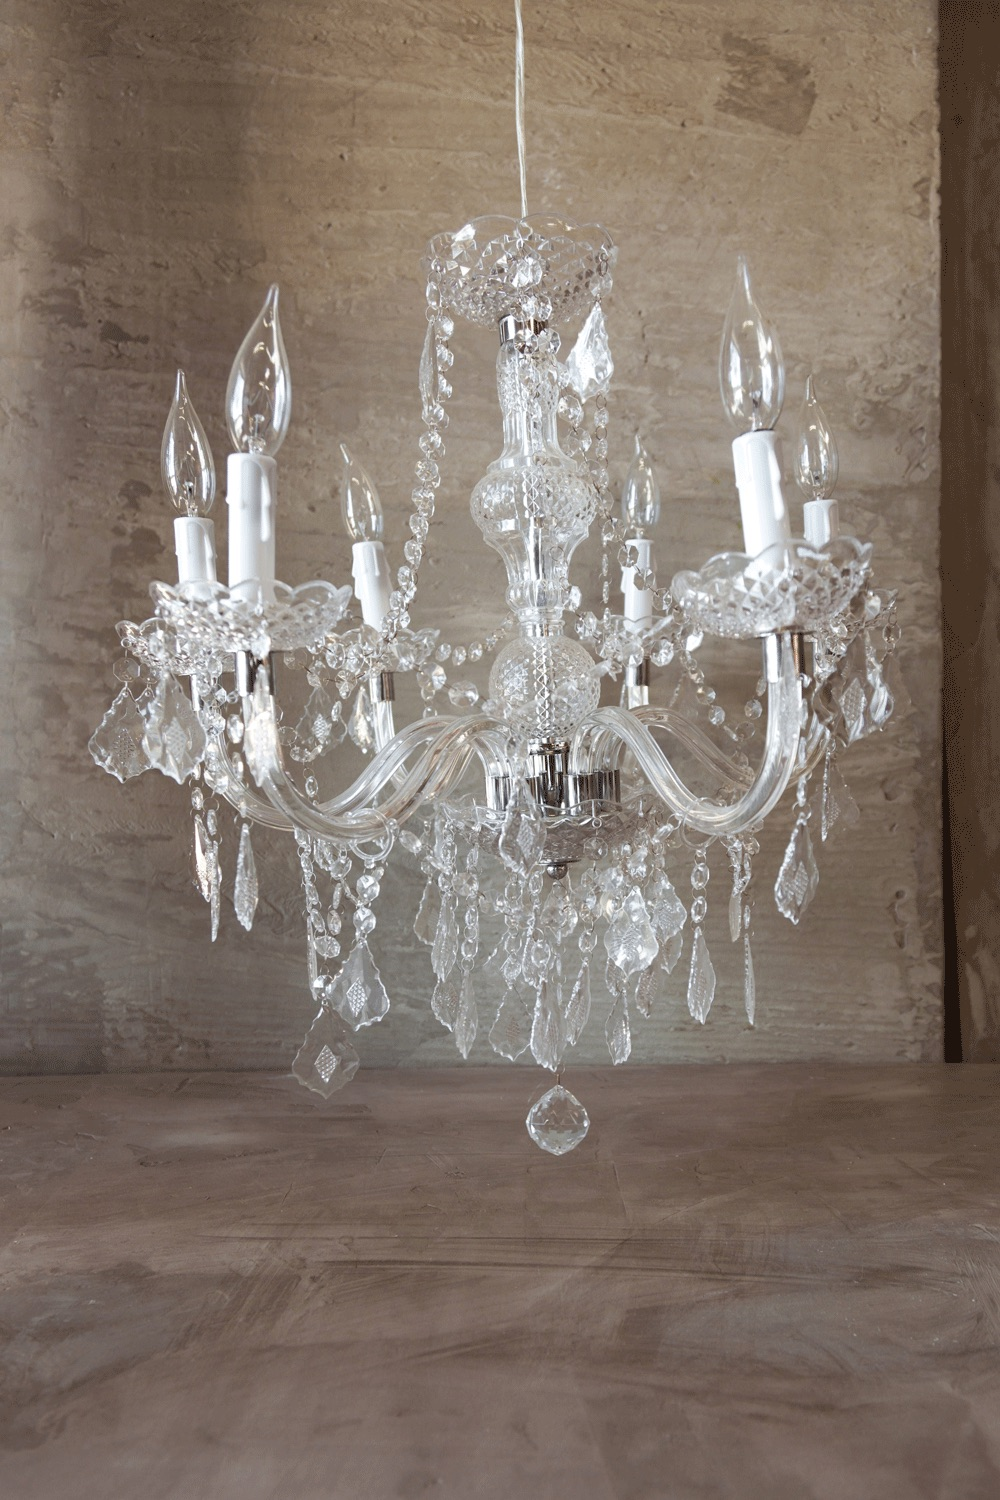 Faux Crystal Chandelier Large $125